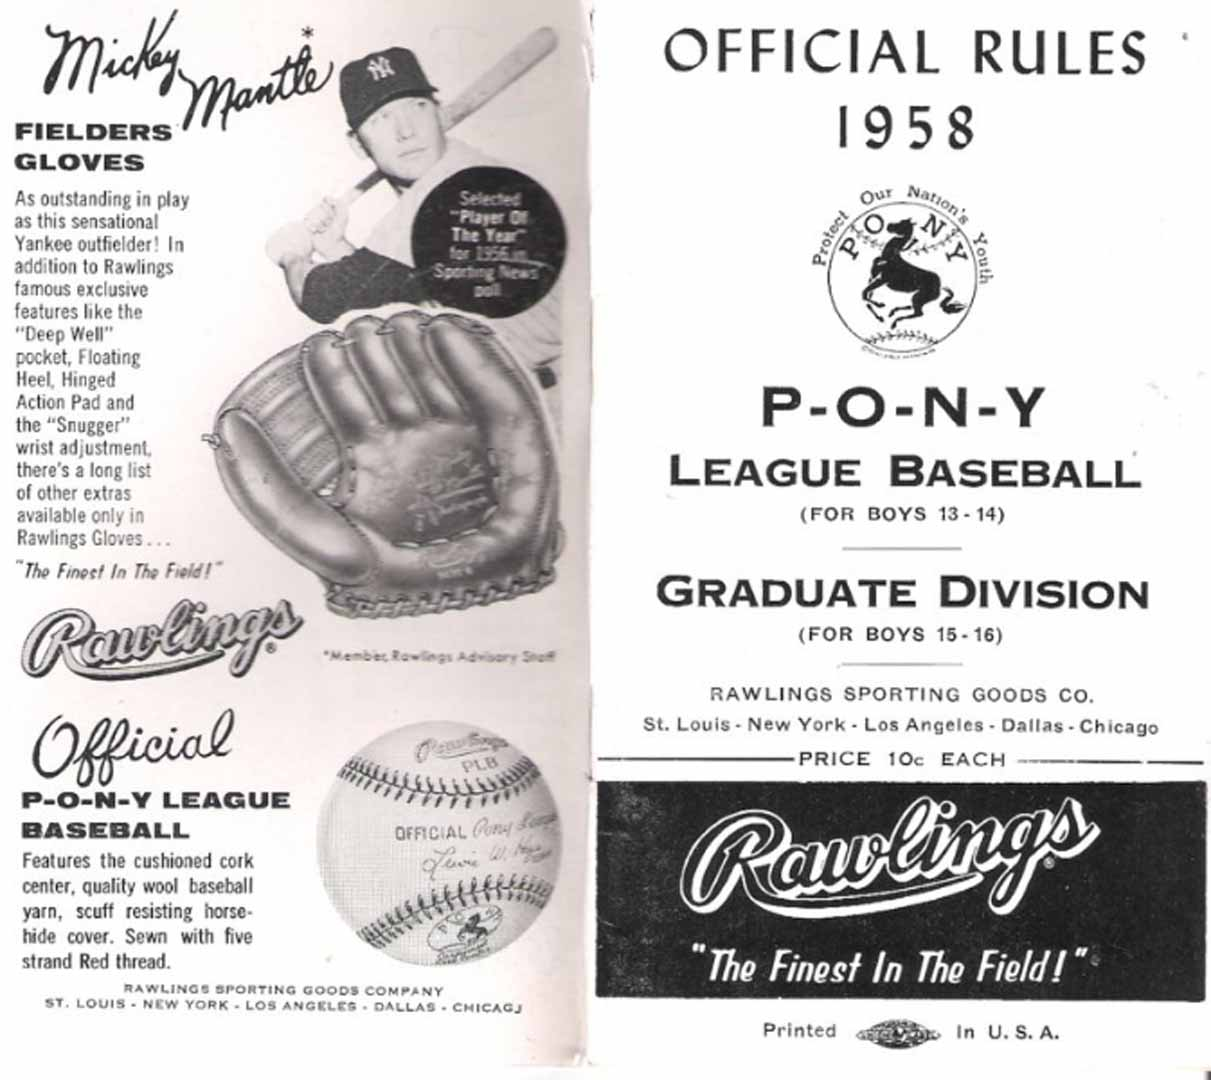 1958 pony league baseball official rules